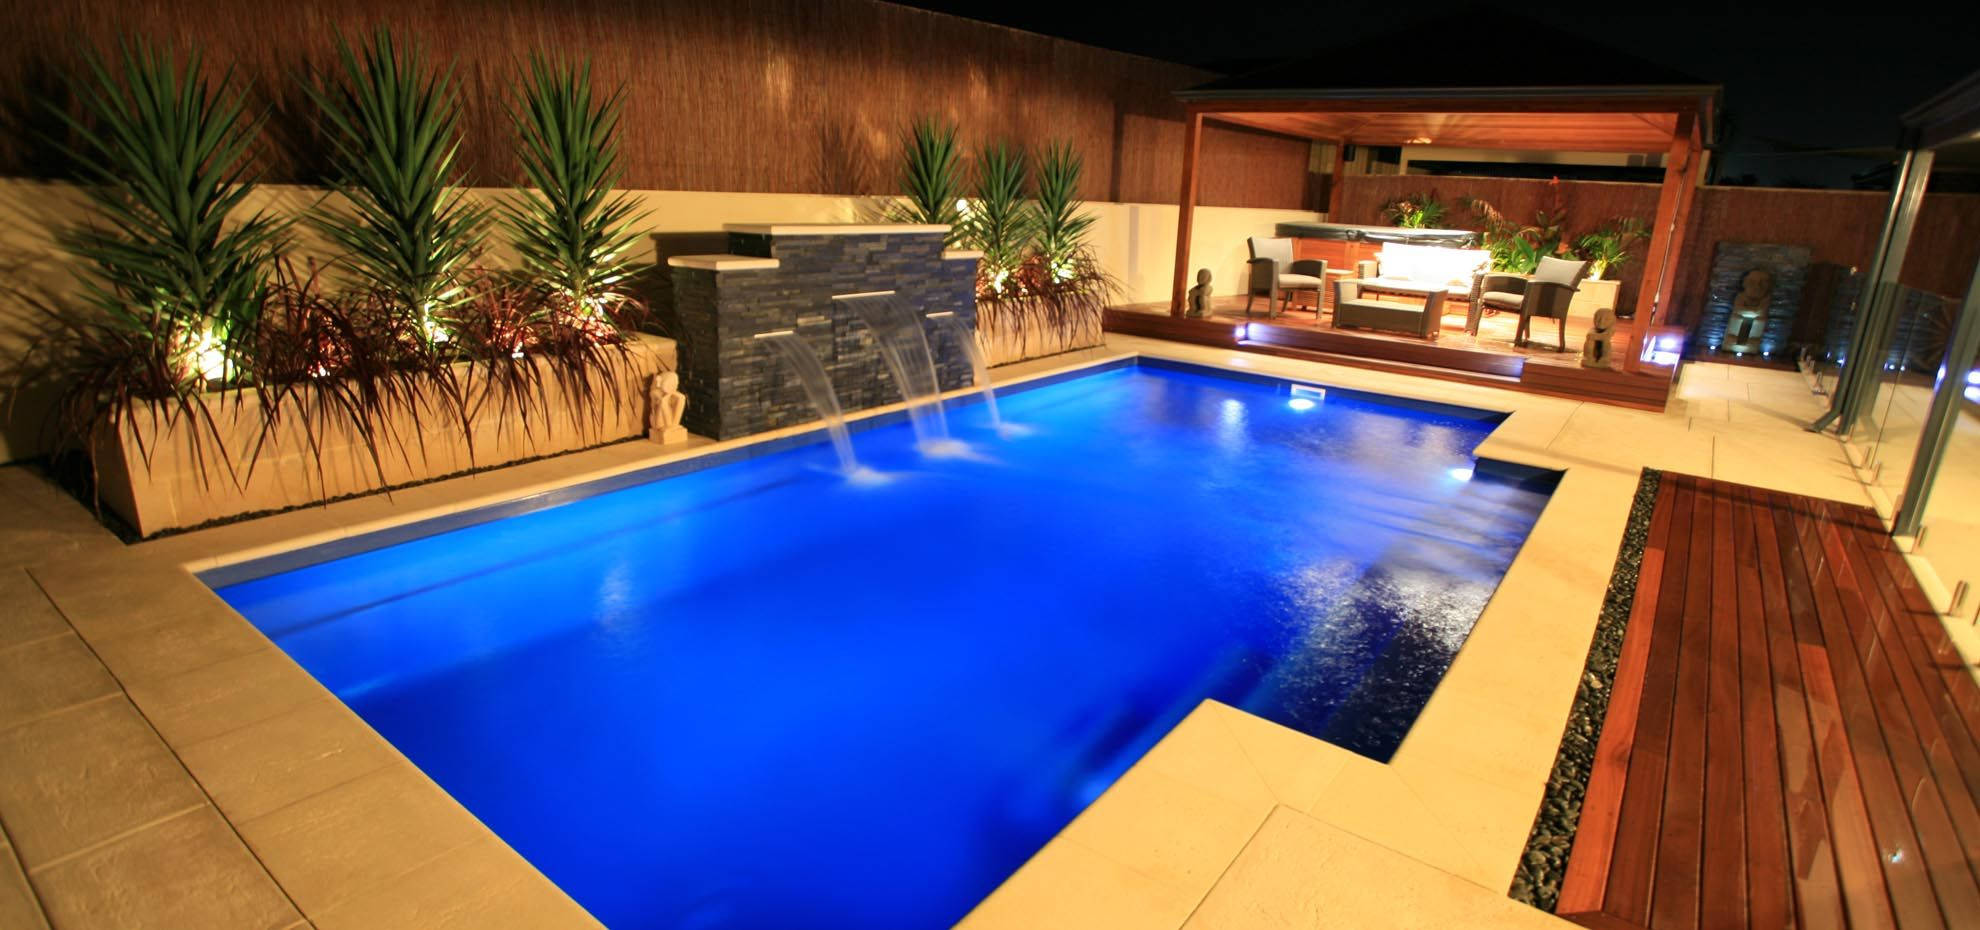 The elegance is lesure pools 39 premiere fibreglass swimming Great pool design ideas